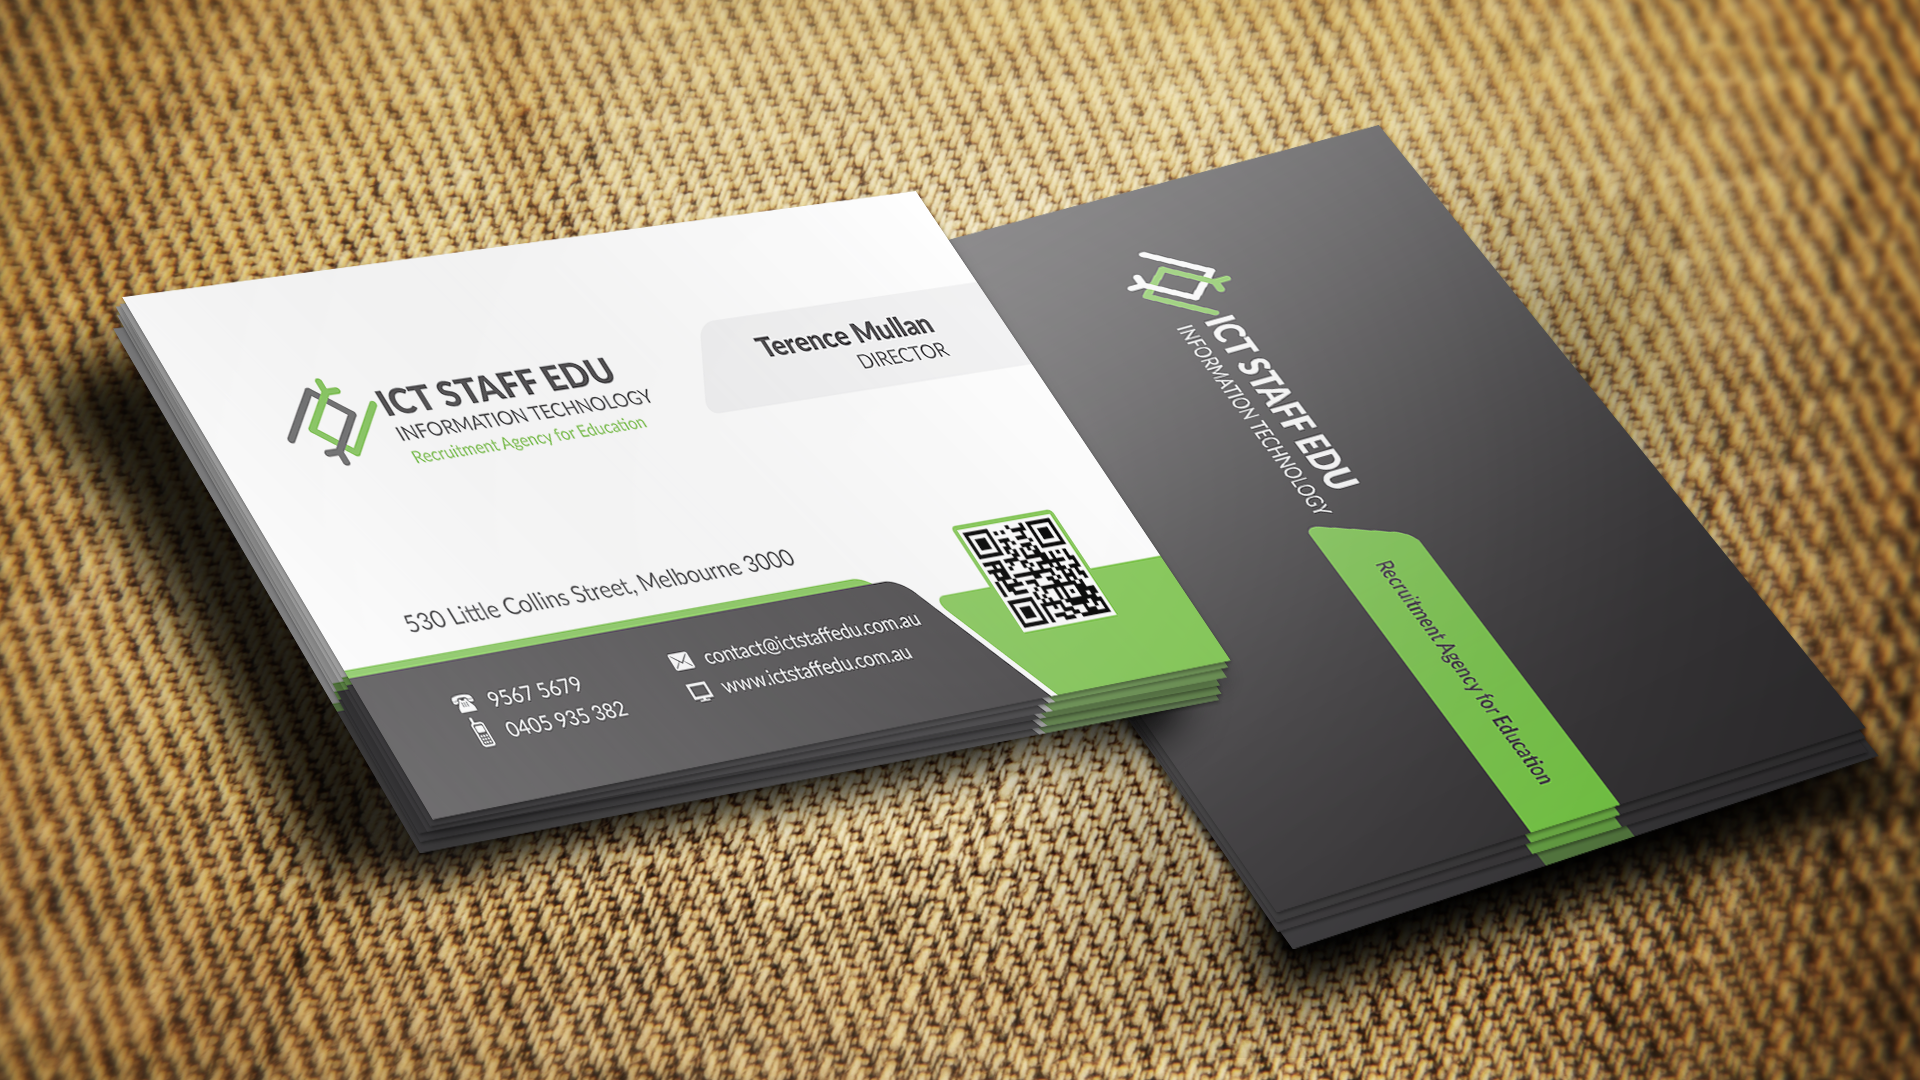 How to design business cards business card design tips oukasfo tagsbusiness card printing amp design vistaprint uk business cards400 creative business card design inspiration logo14 best business cards in the biz how colourmoves